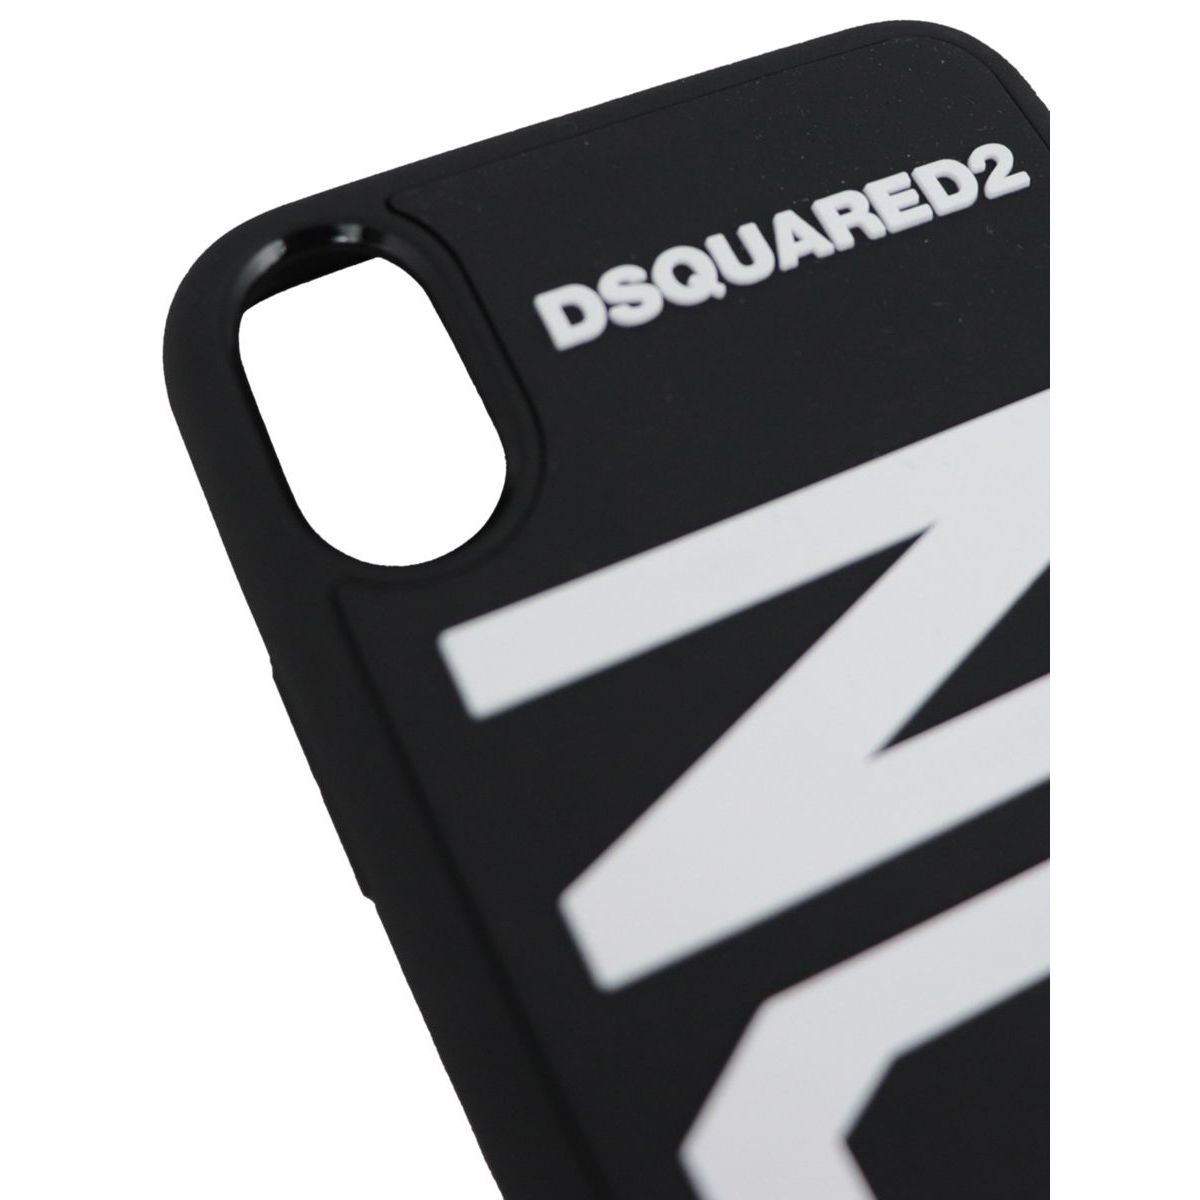 Iphone X cover with rubberized logo Black Dsquared2